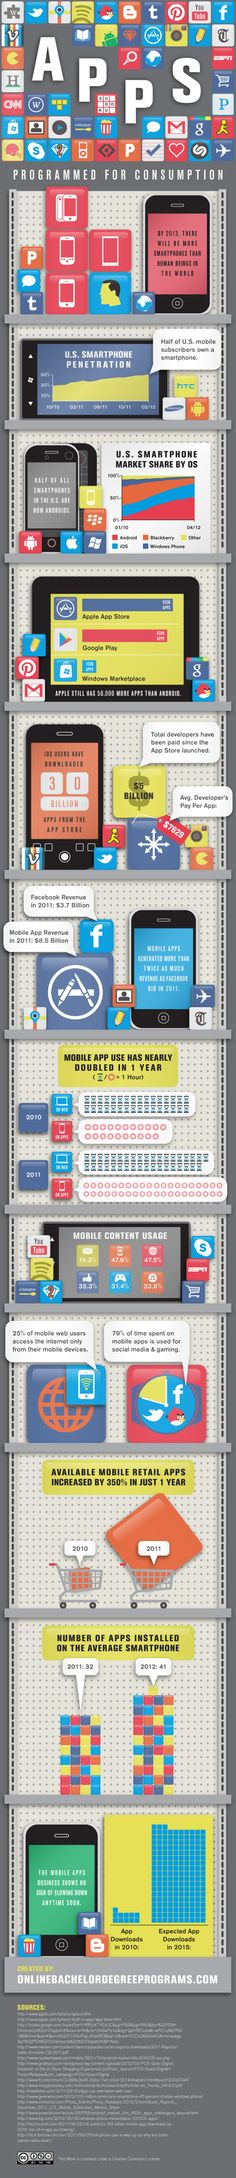 smartphone apps till now>!